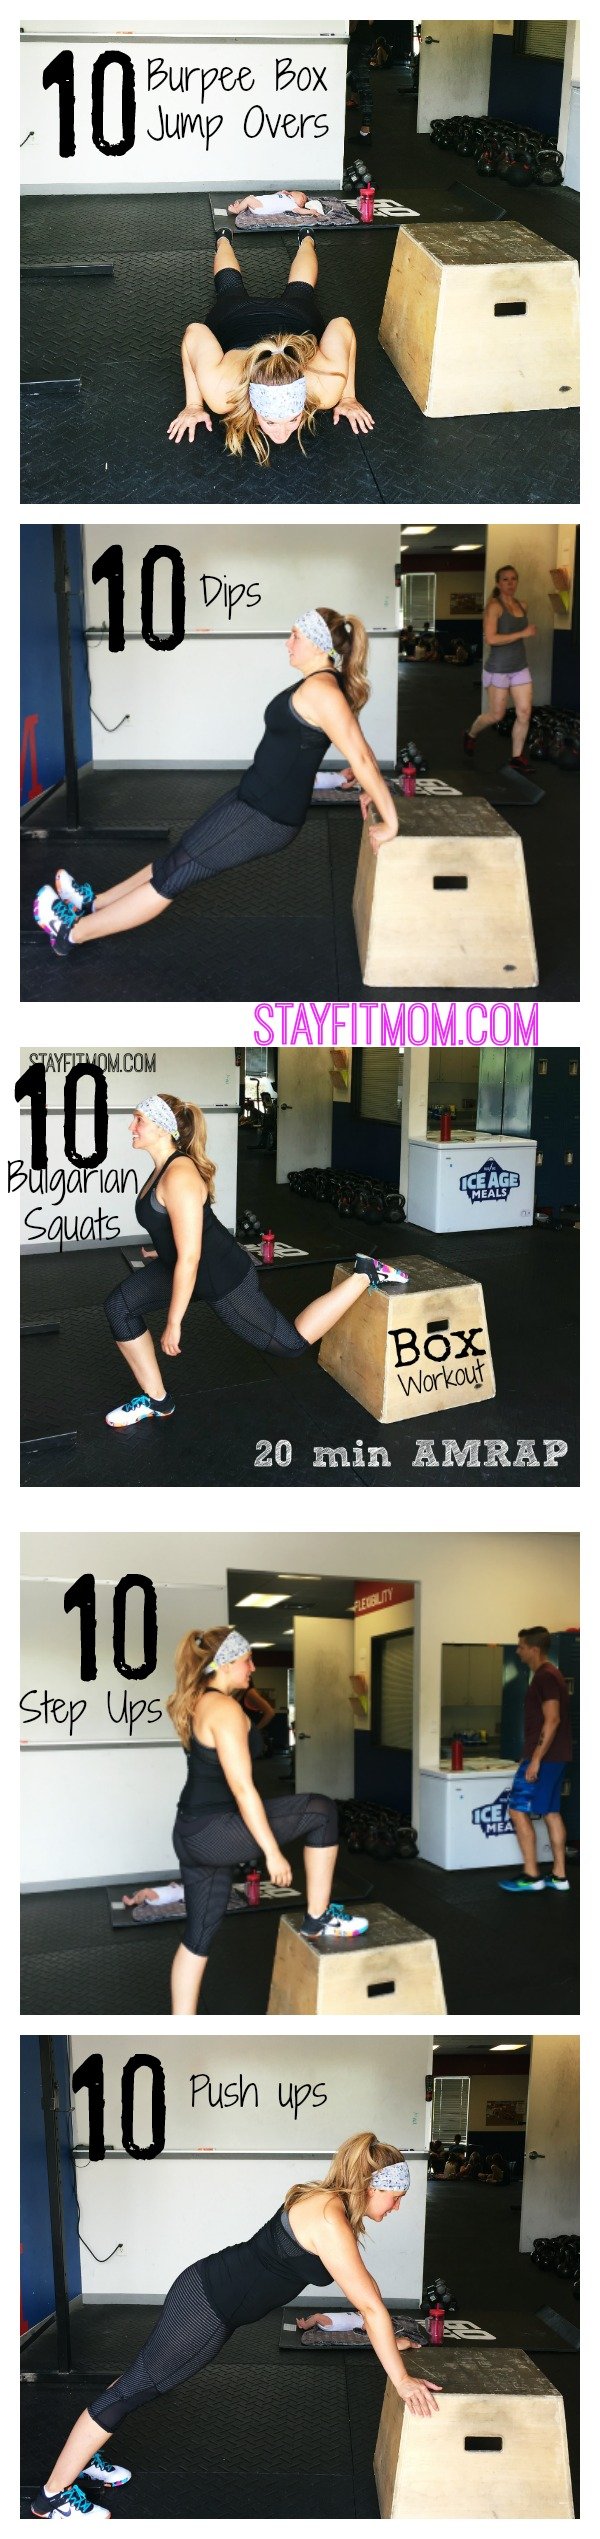 CrossFit workouts for women from StayFitMom.com.